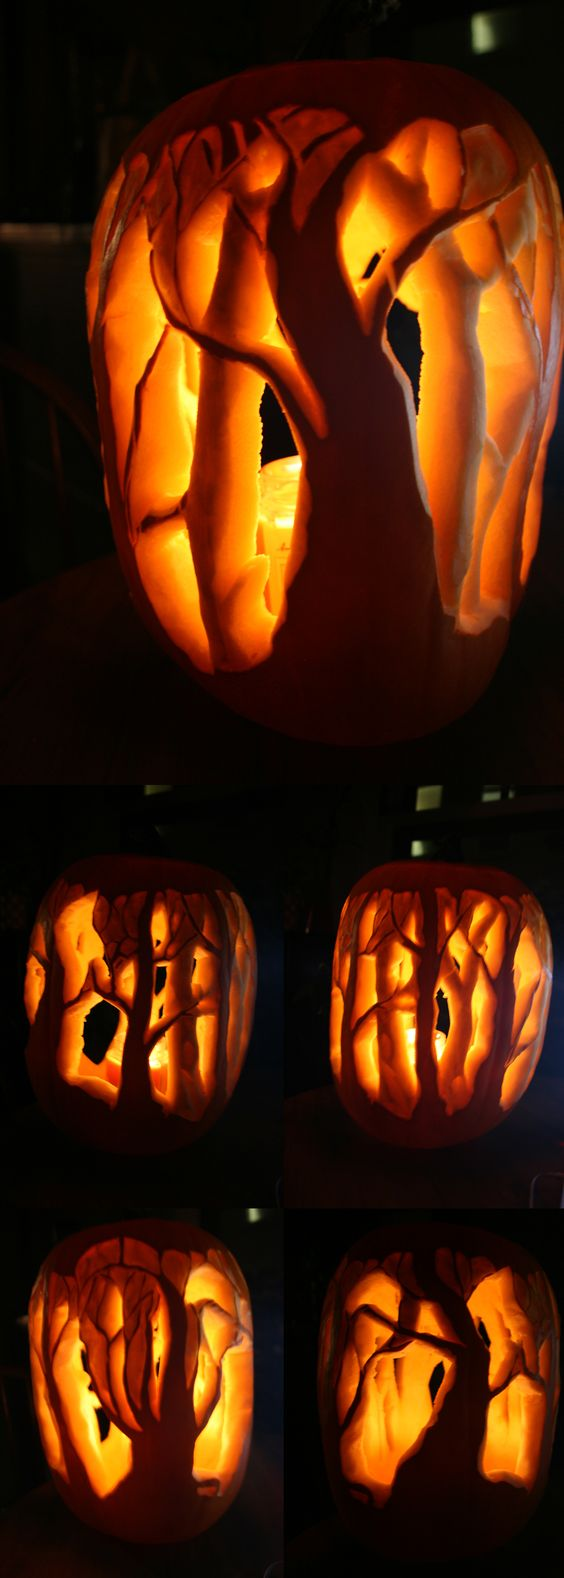 55. FOREST PUMPKIN CARVING